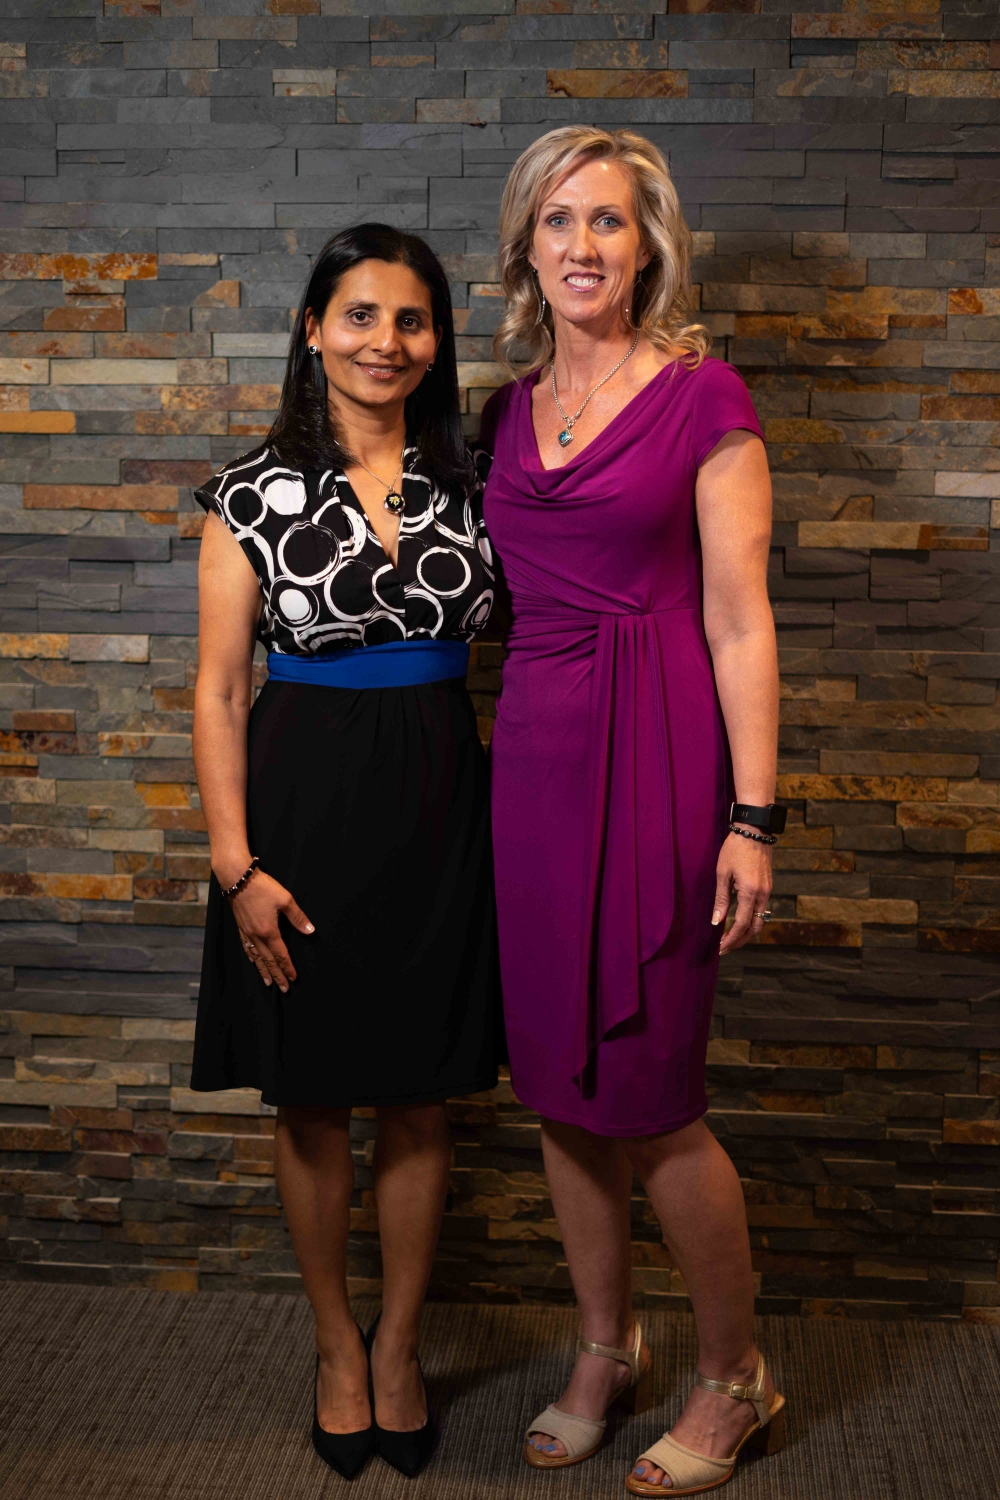 Rebecca McGowan & Payal Soni-Patel Physcians Assistants For Asheville Neurology Standing In Front of a Wall